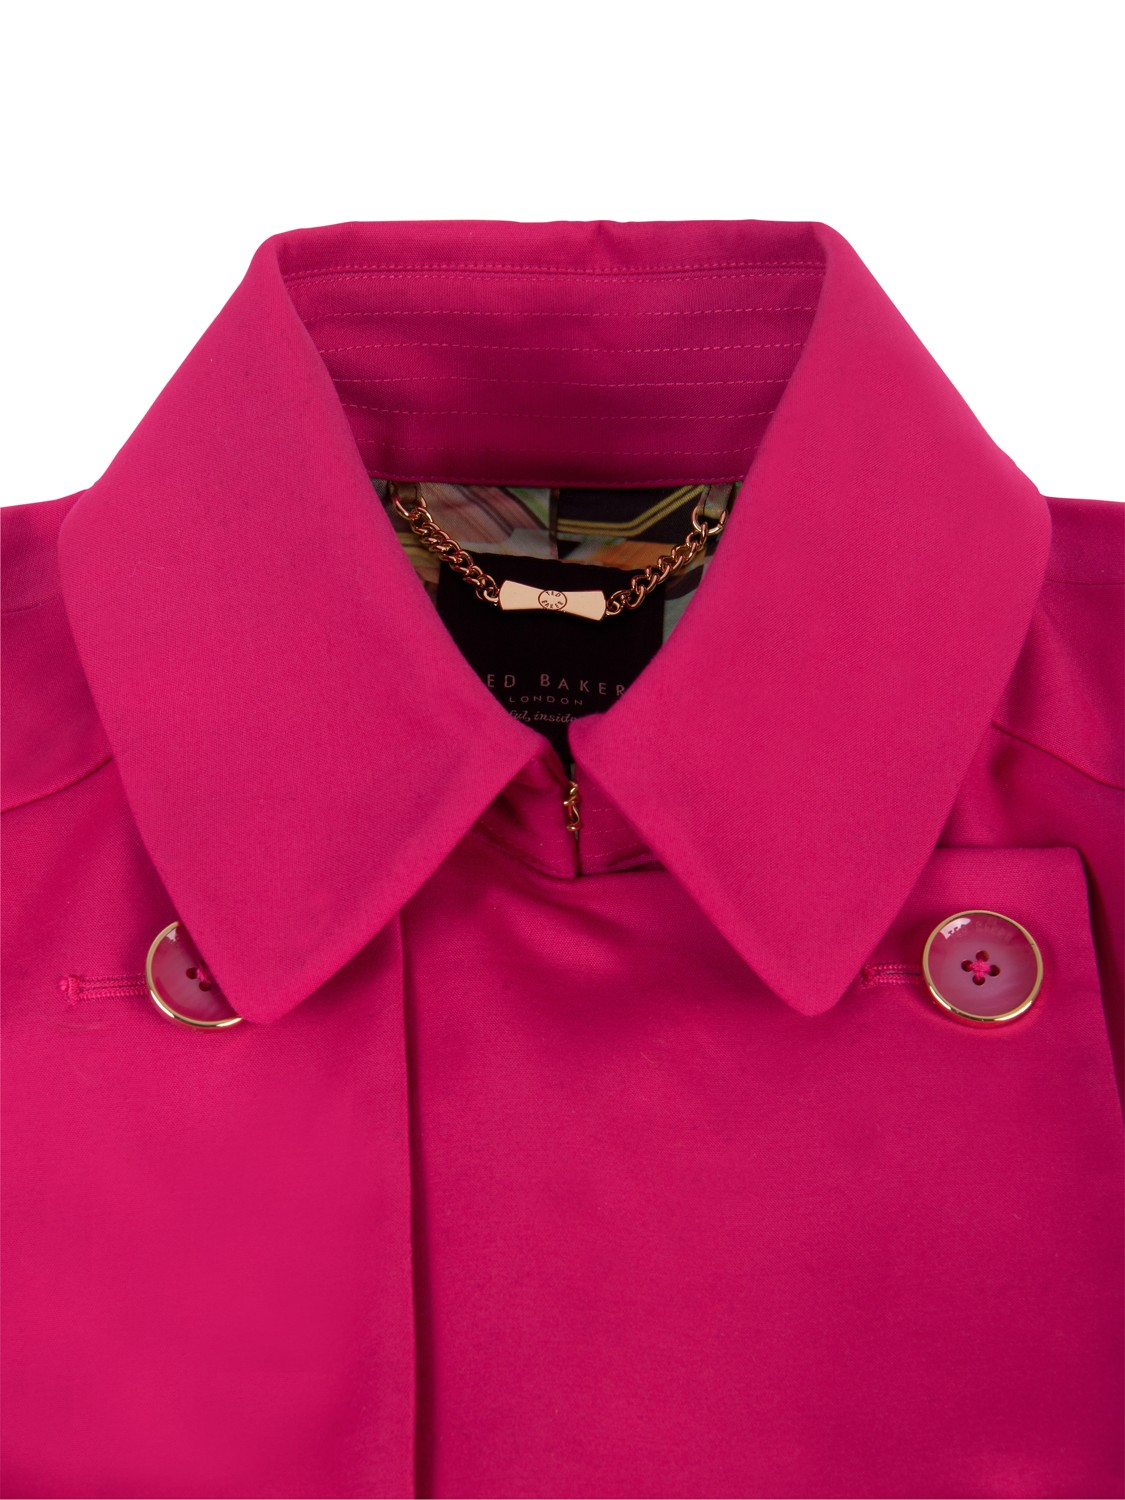 Ted Baker Carisa Double Breasted Belted Trench Coat in Pink - Lyst eb76cbb228